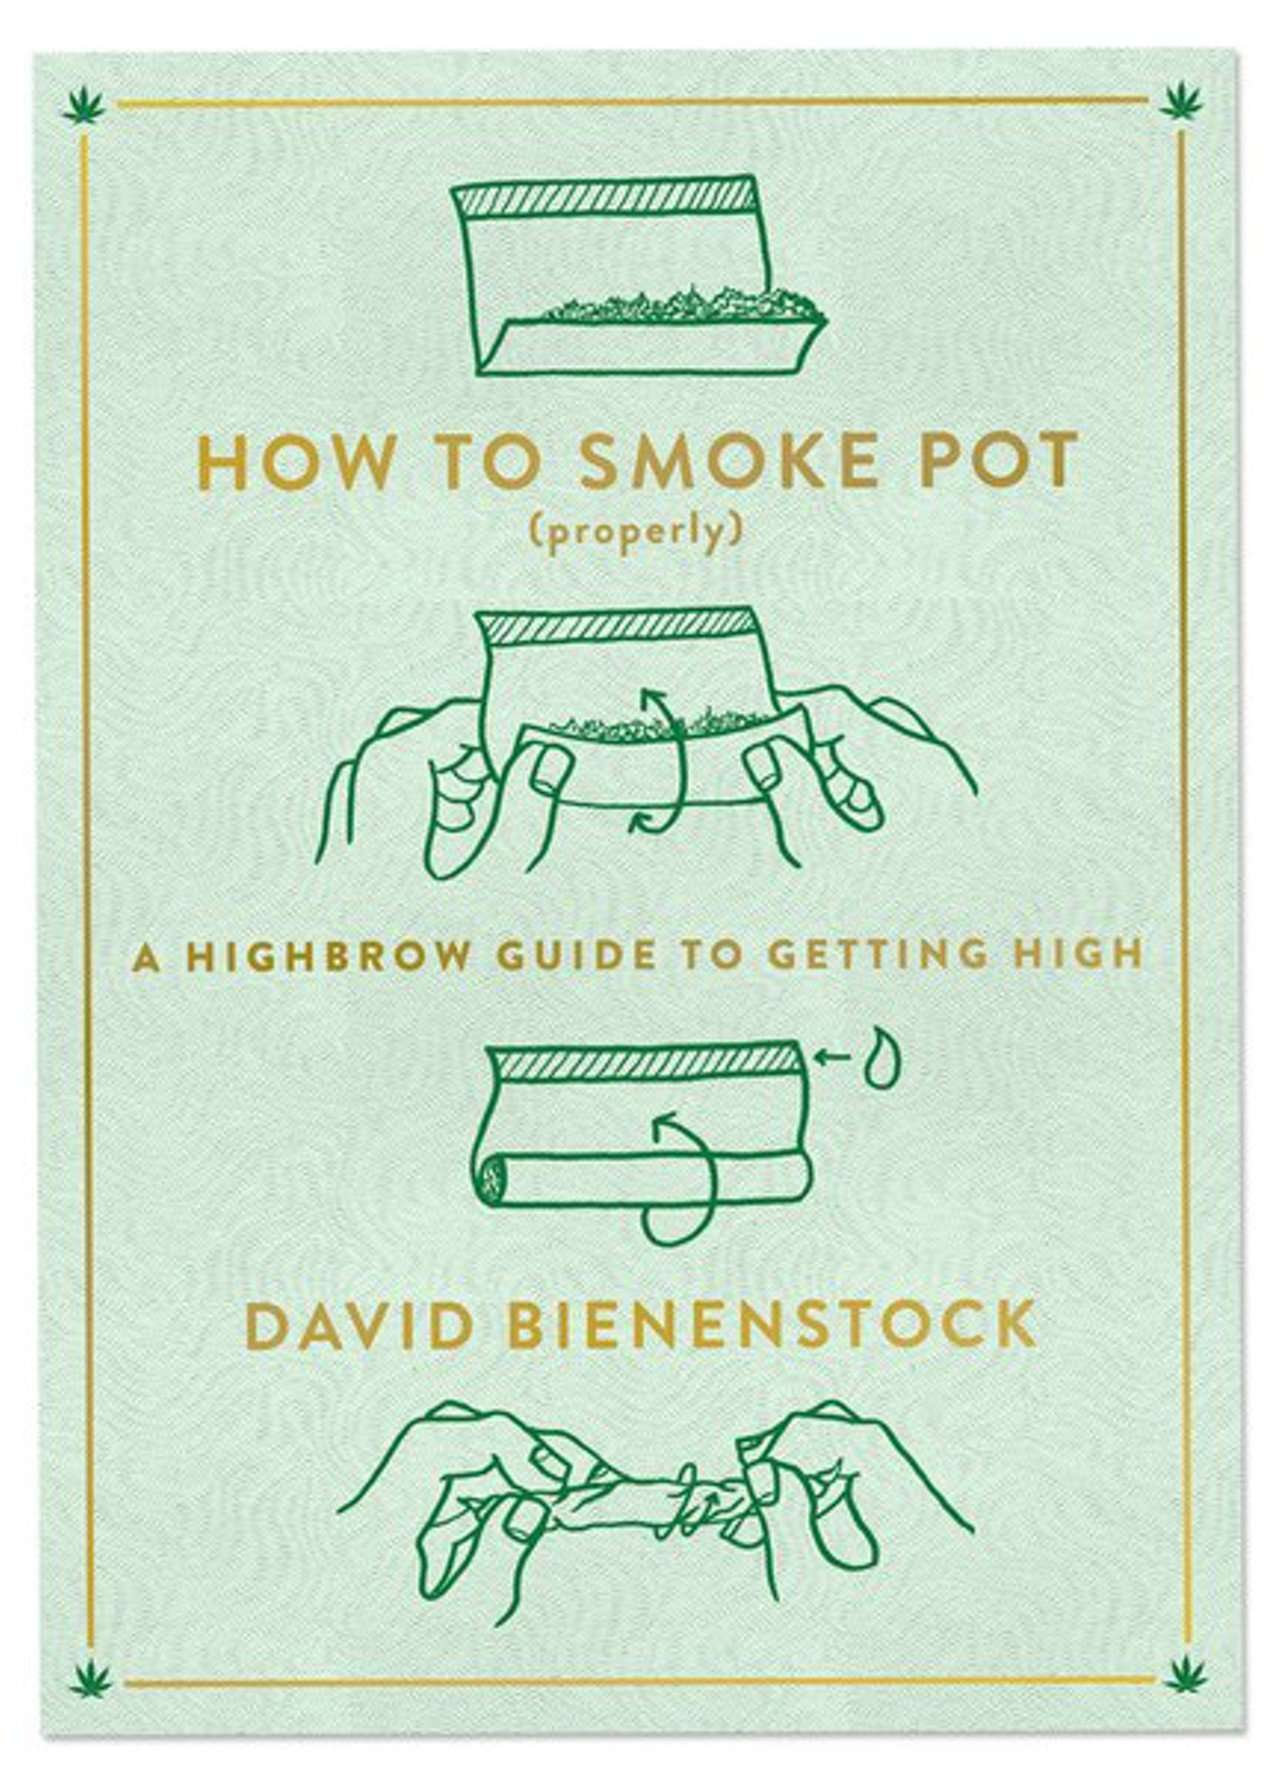 David Bienenstock, How to Smoke Pot Properly